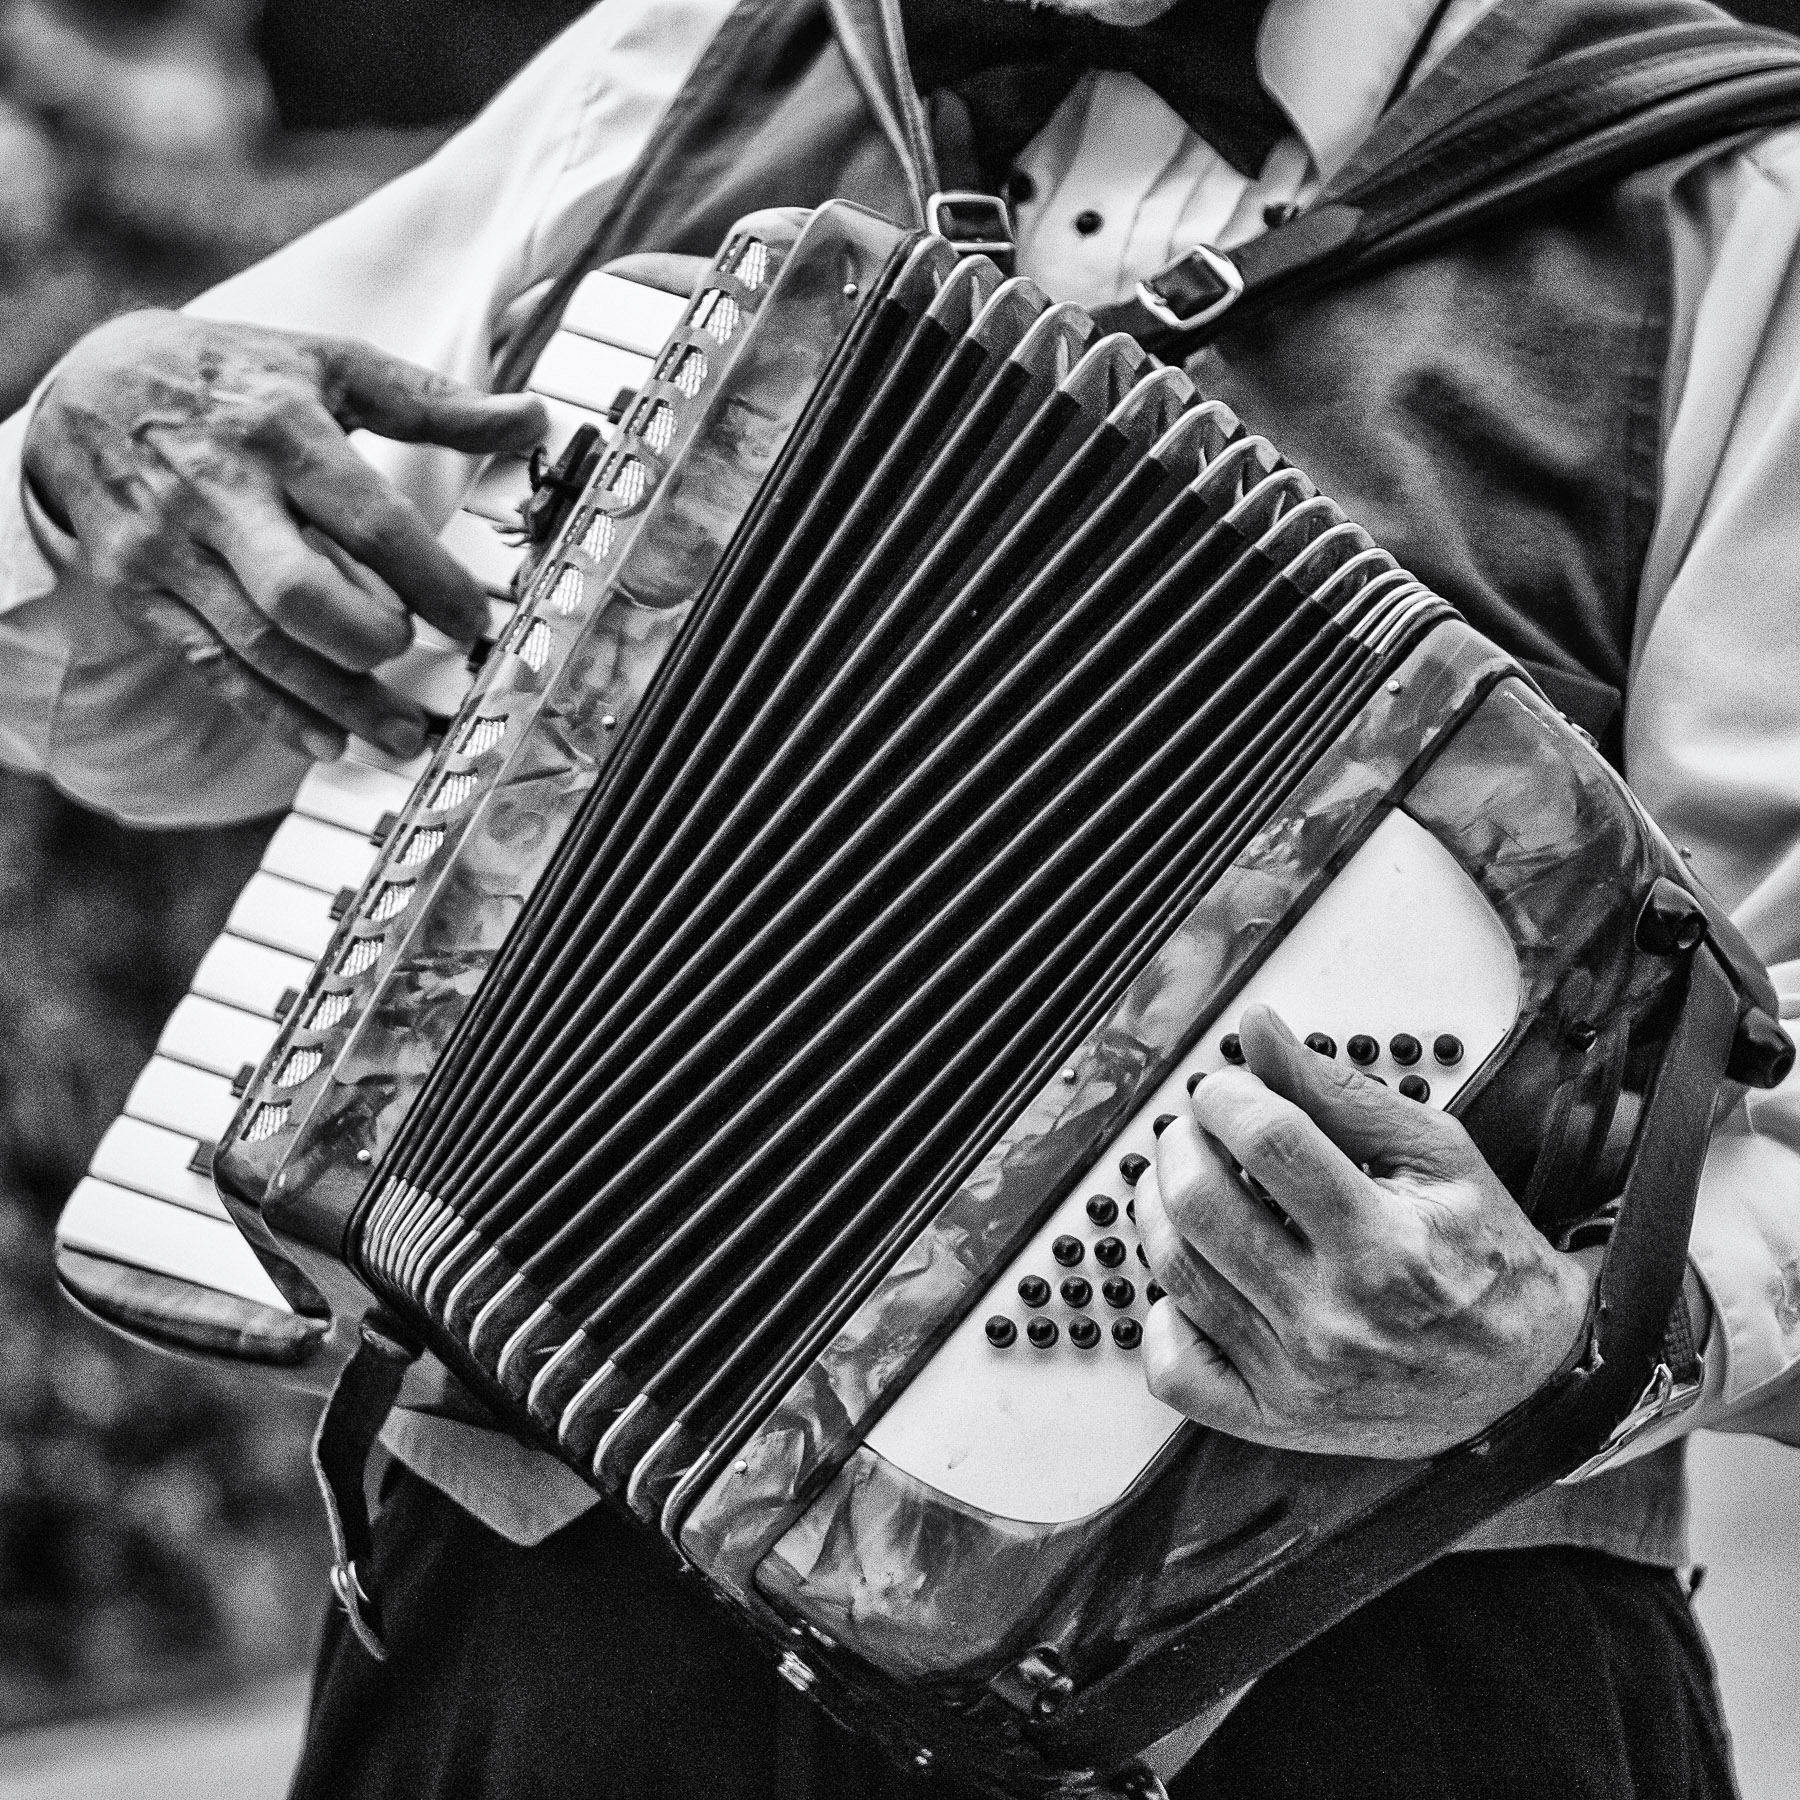 An accordionist plays his instrument at Addison Oktoberfest, Addison, Texas.